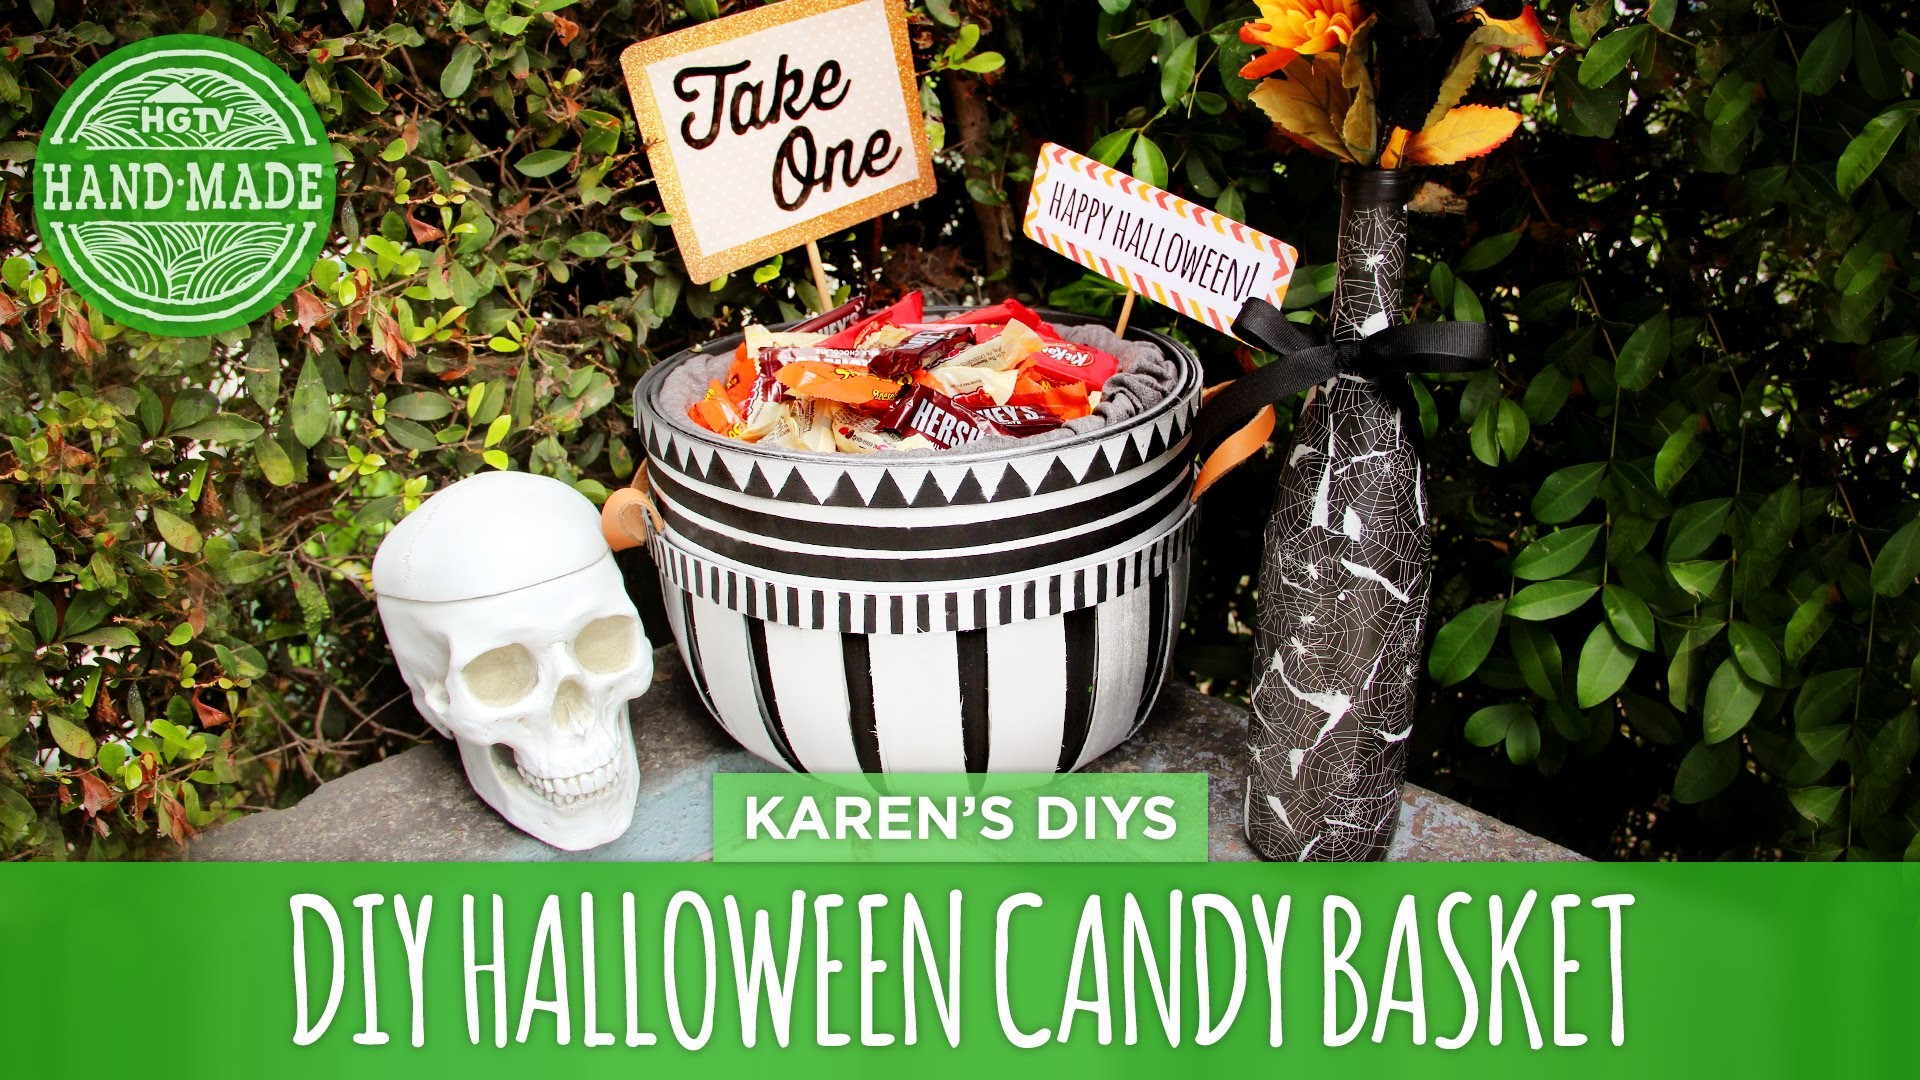 DIY Trick or Treating Candy Basket - HGTV Handmade